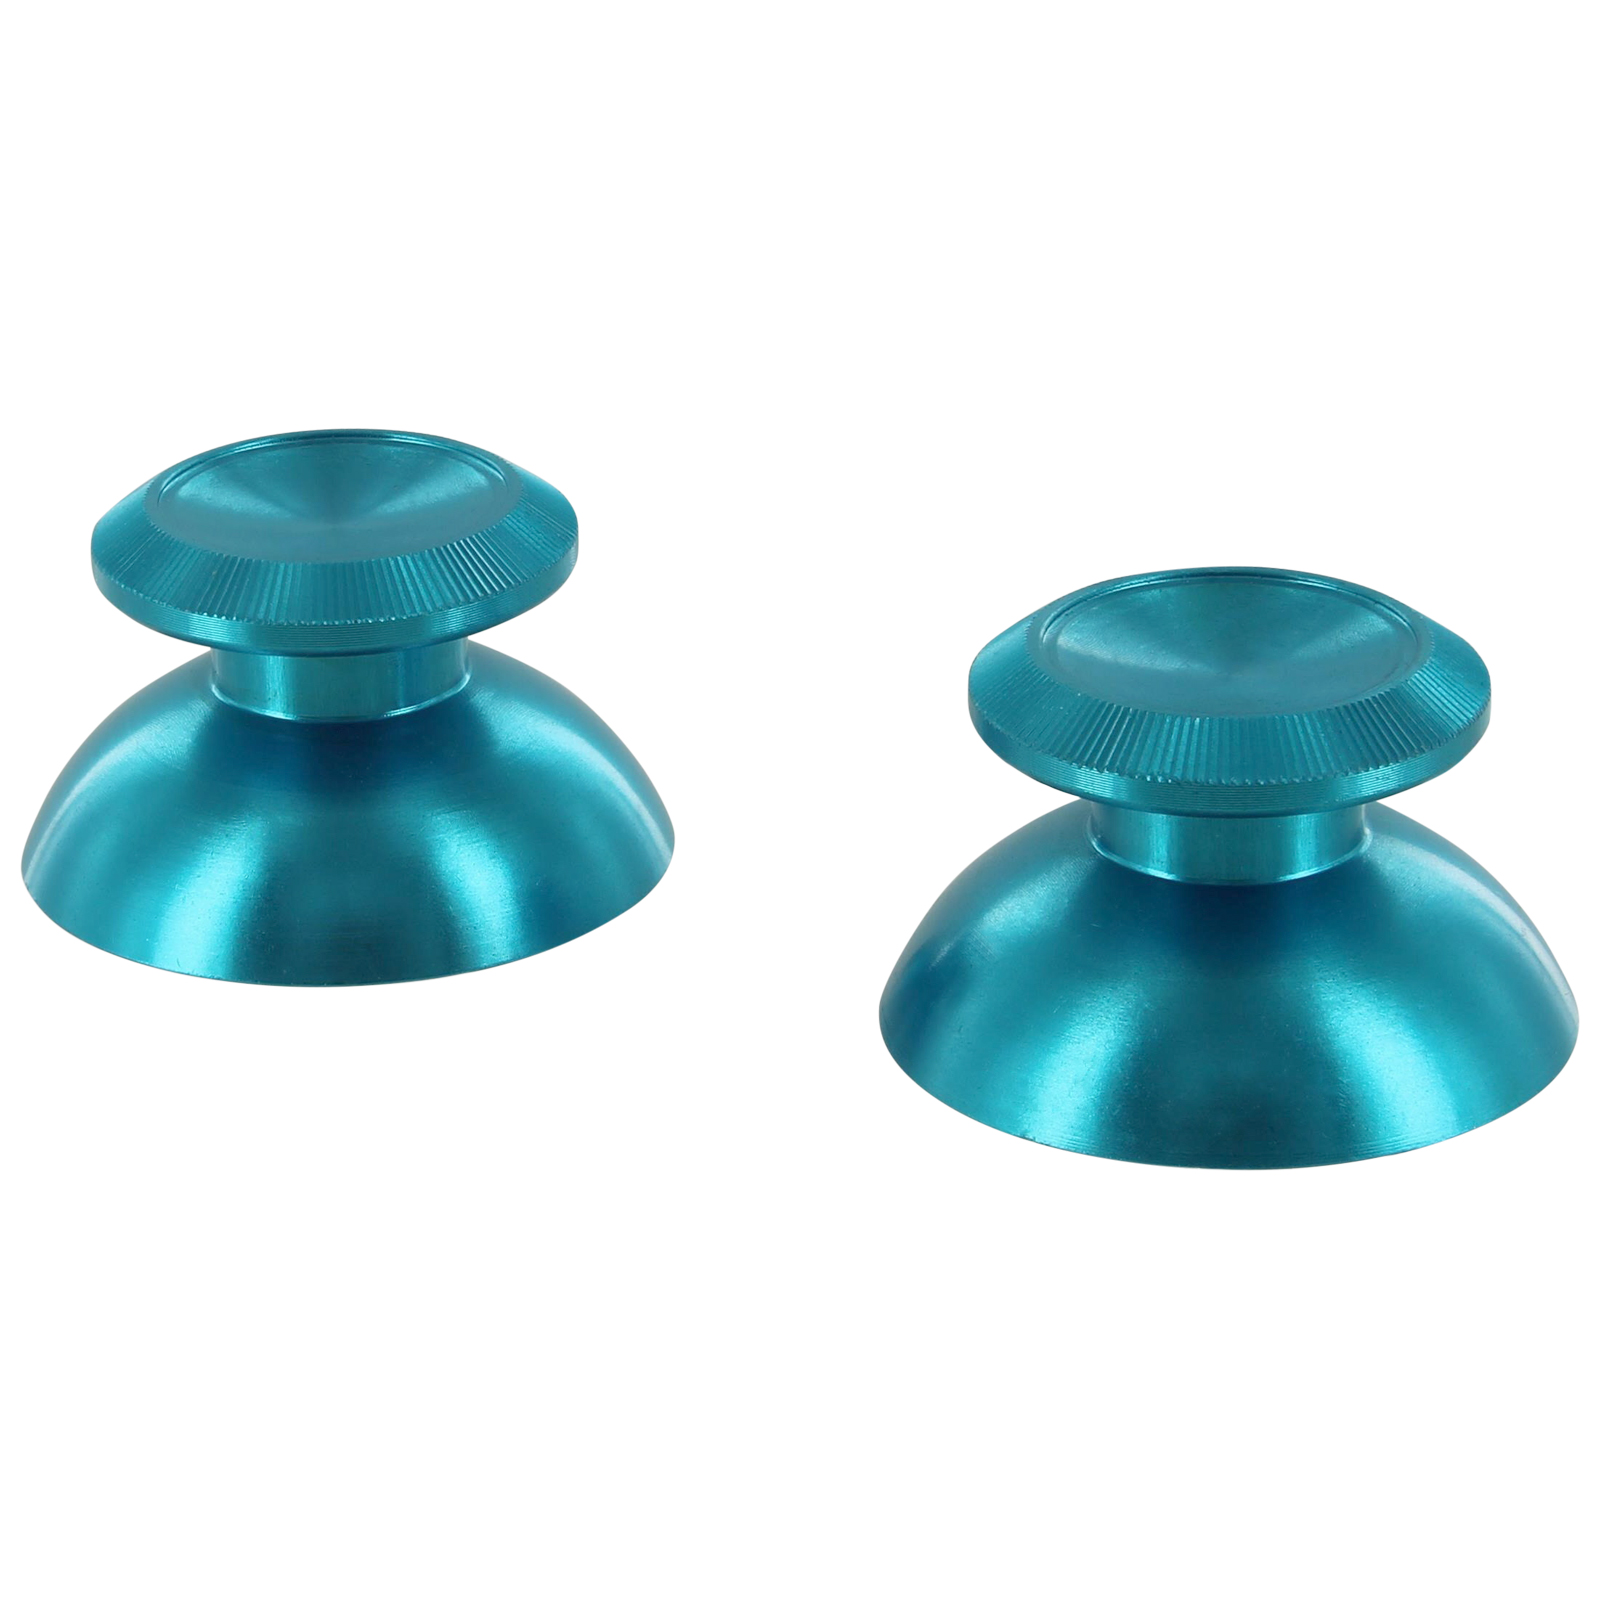 Zedlabz Aluminium Alloy Metal Analog Thumbsticks For Sony Ps4 Controllers - Blue